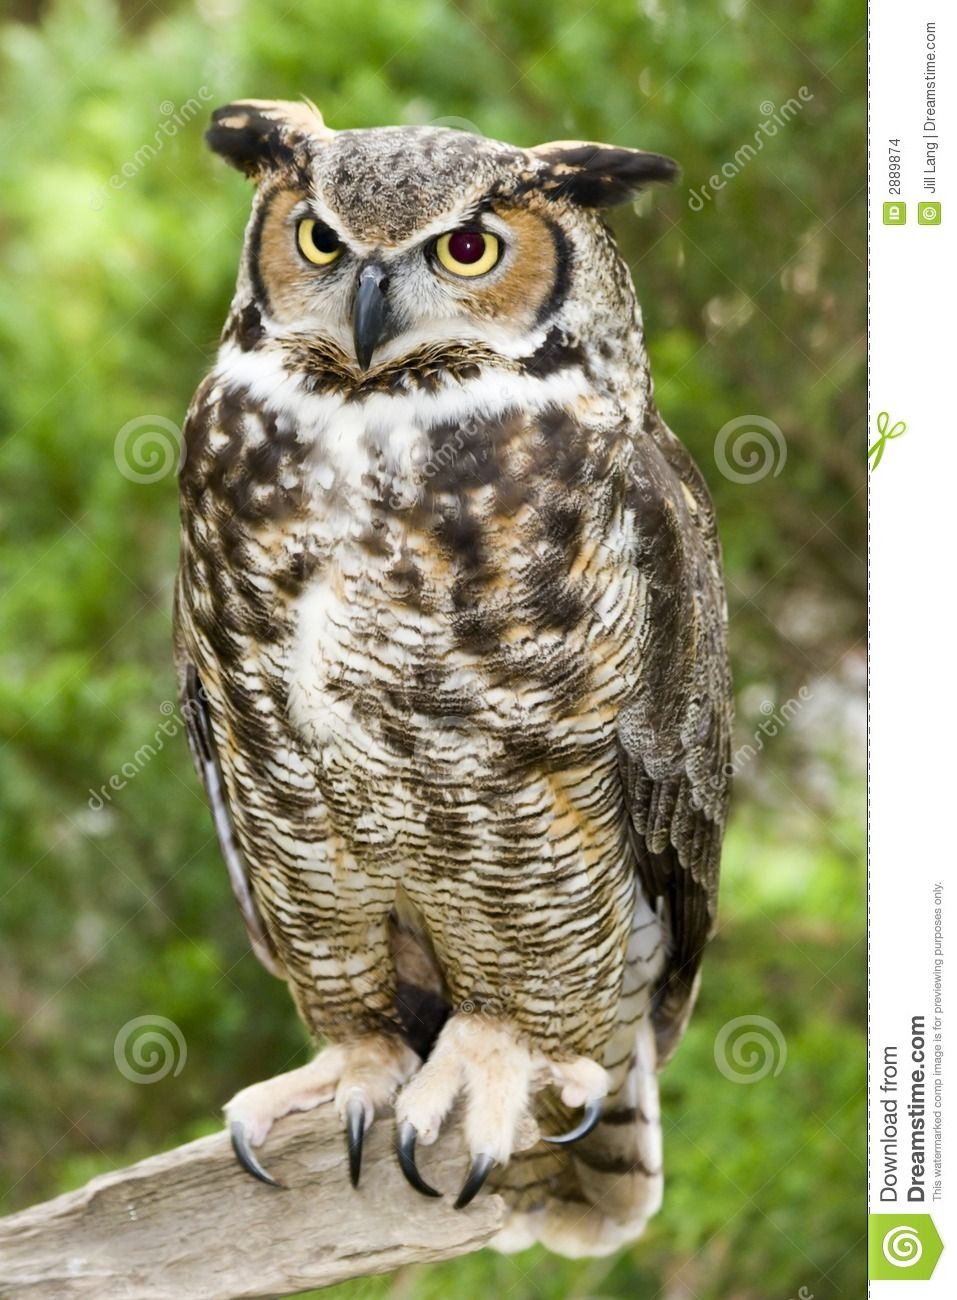 great horned owl download from over 50 million high quality stock